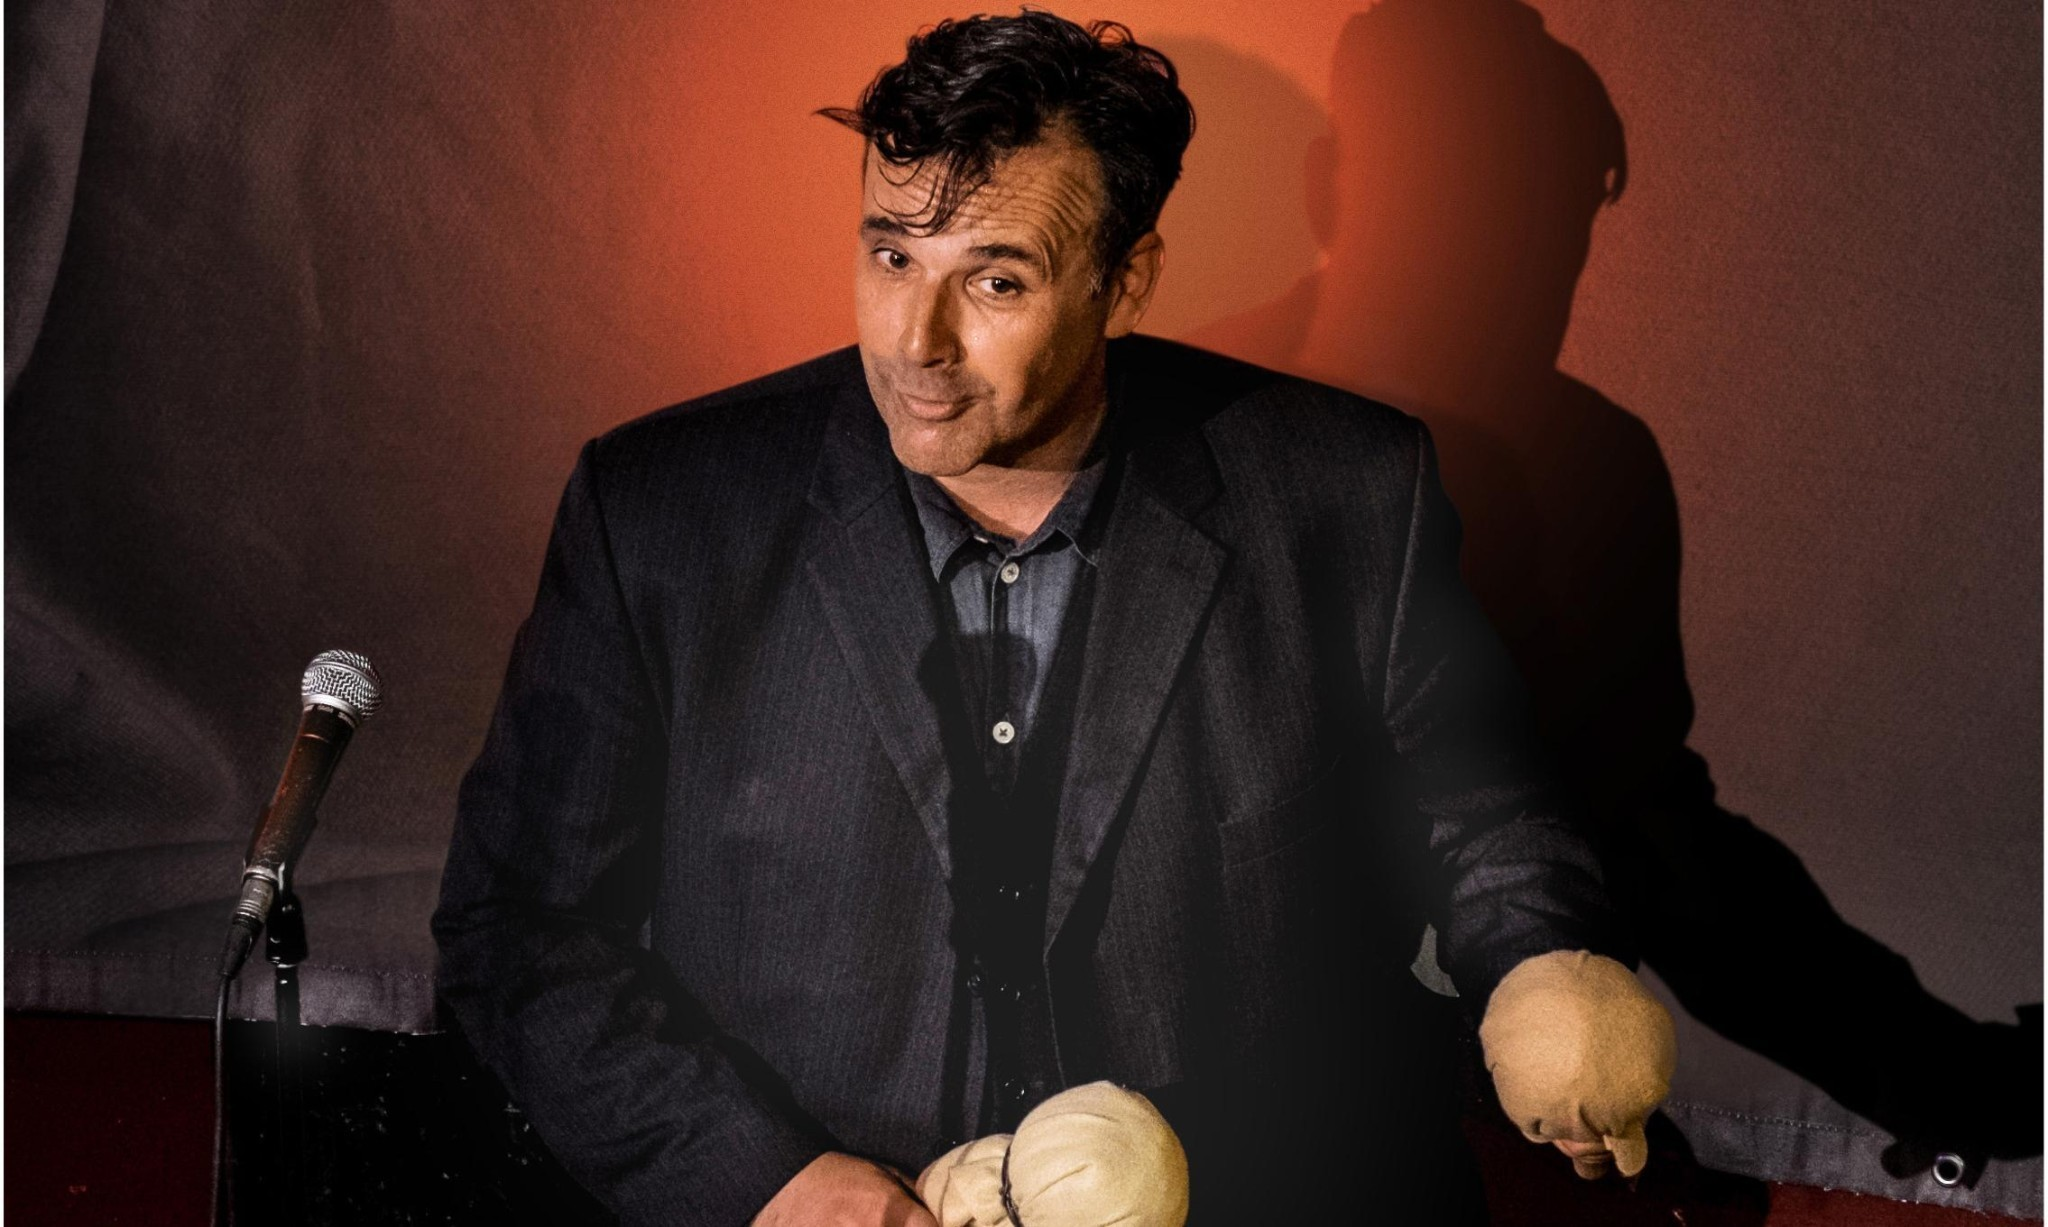 'We know so little about so much': Robert Newman talks skulls, science and psychology